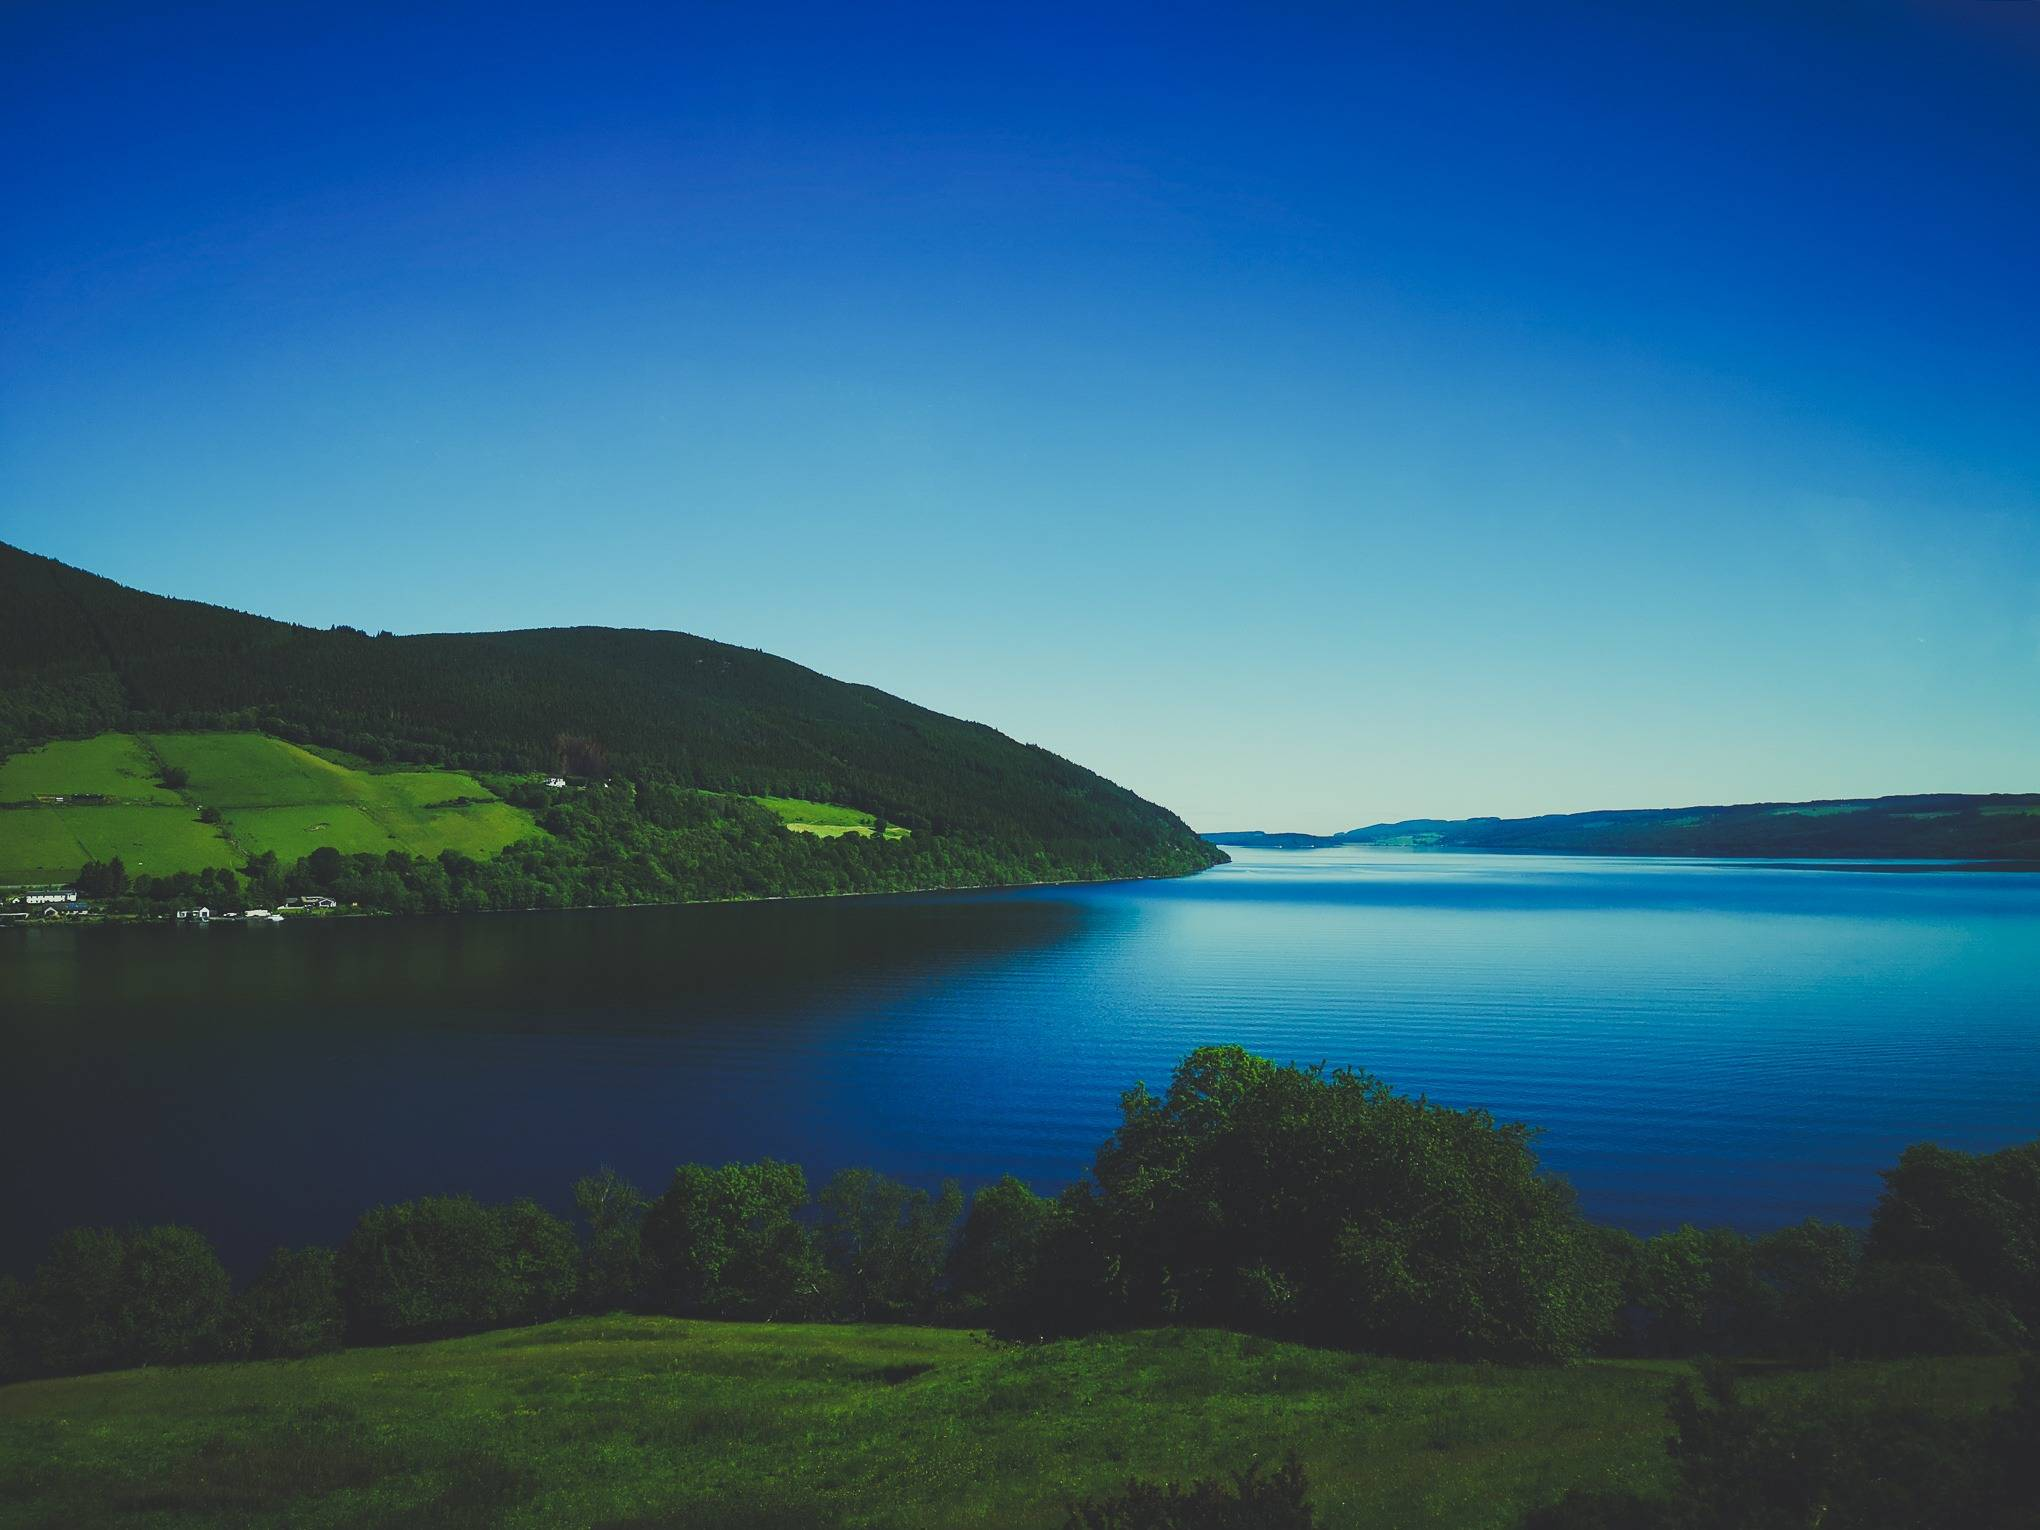 Loch Ness surounded by hills on a sunny day, Highlands of Scotland. Photo by Alis Monte [CC BY-SA 4.0], via Connecting the Dots